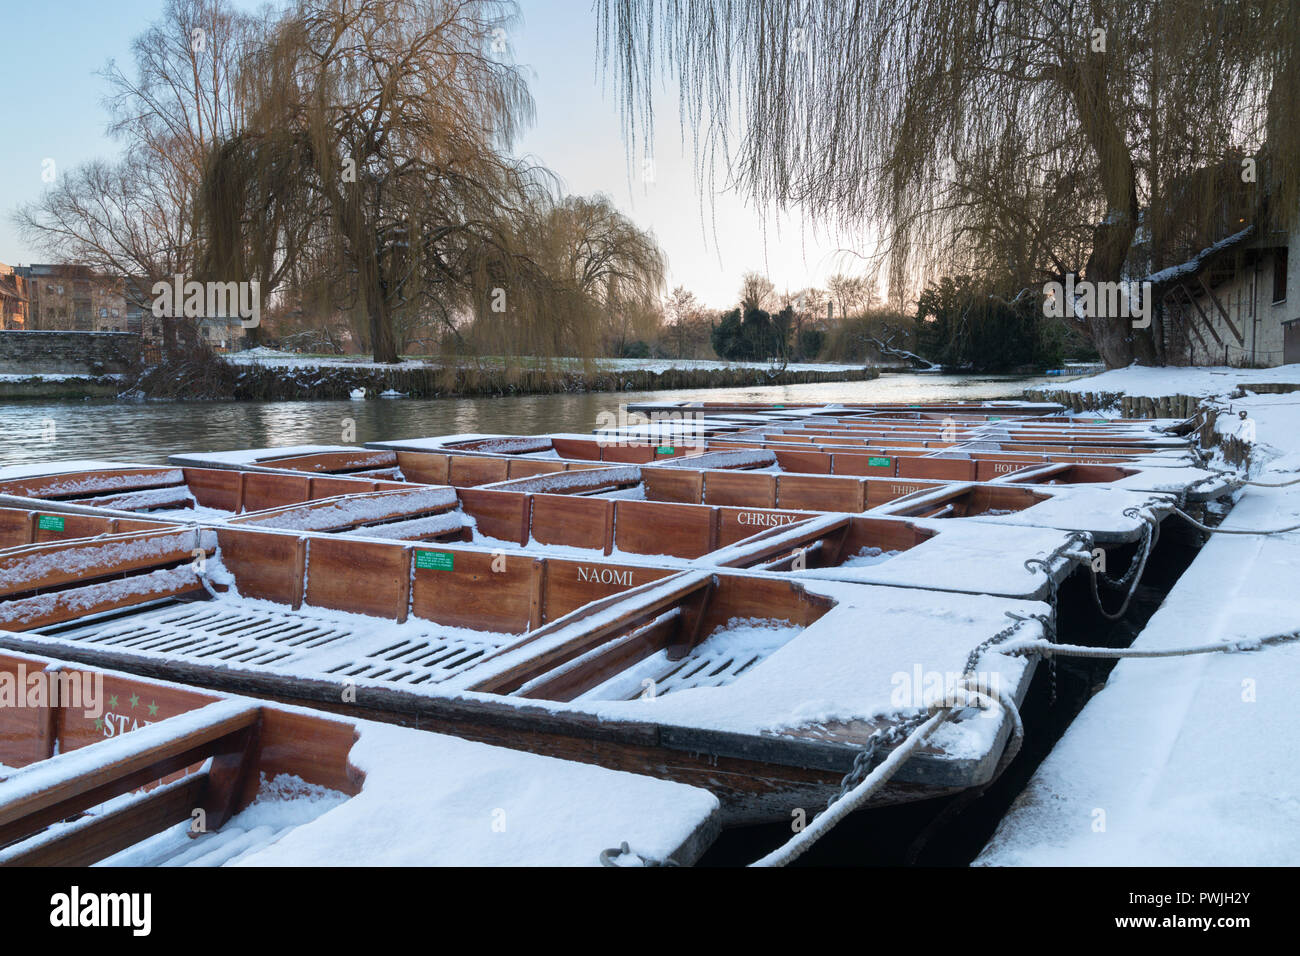 Cambridge punts in the snow, moored up at the Mill pond, Cambridge England, UK - Stock Image